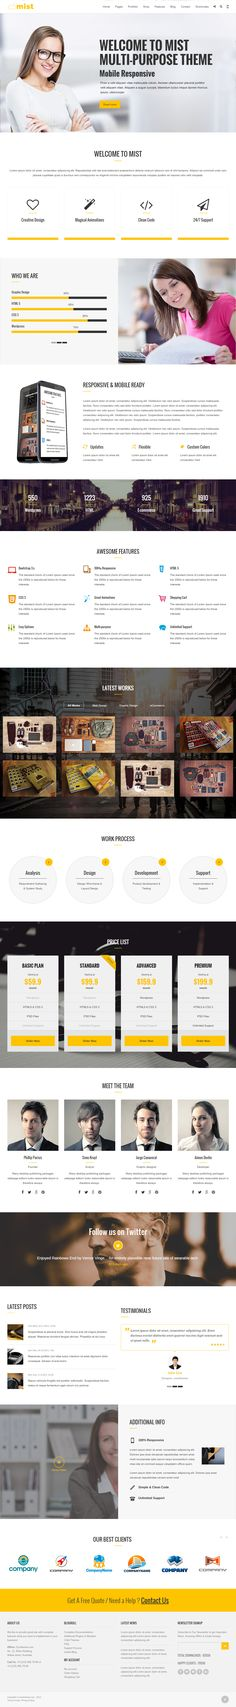 Parallax Website Template Kero Is Premium Full Responsive Html5 Template For Personal And